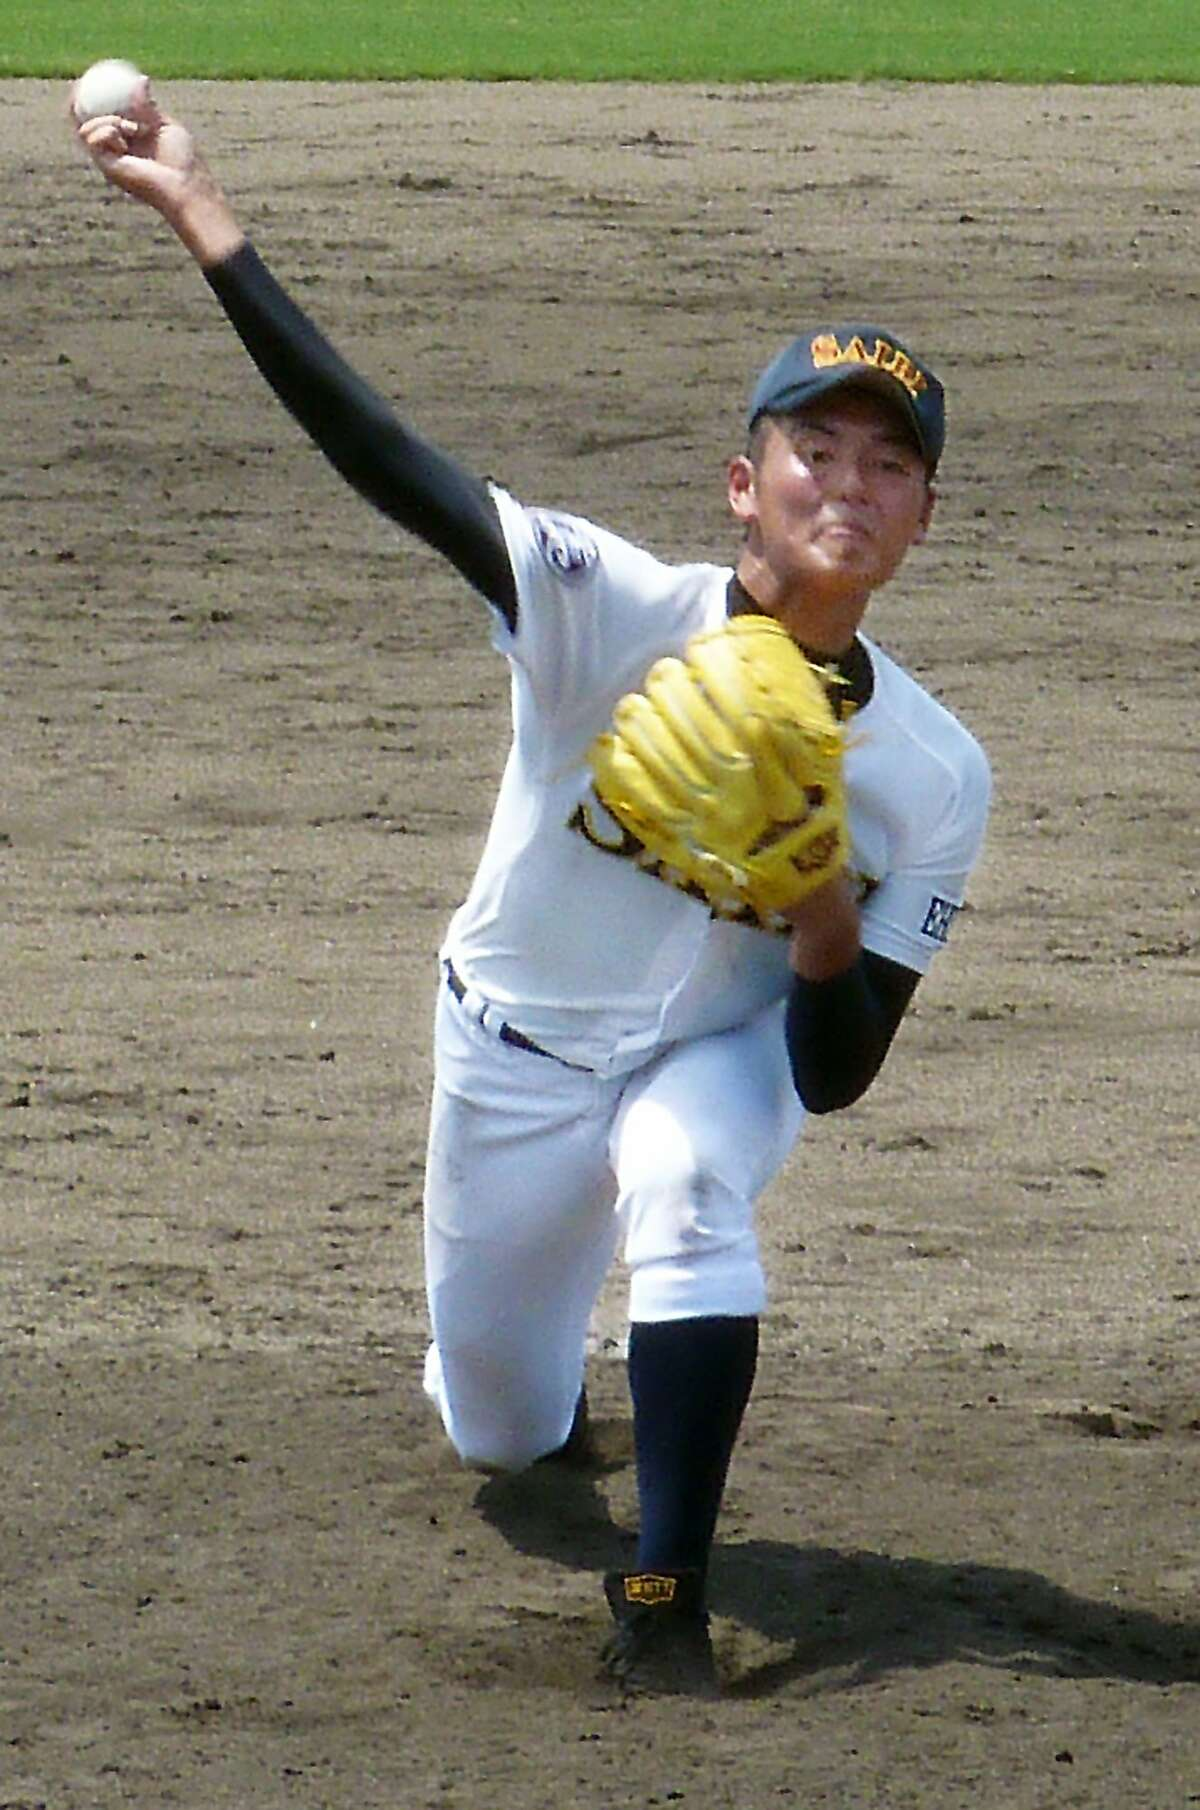 Saibi High School's Tomohiro Anraku delivers a pitch against Mishima High School in their baseball qualifying game in Saijo, southwestern Japan, Wednesday, July 16, 2014. Anraku, who many consider the future of Japanese baseball, took the mound and pitched a complete-game shutout an 8-0 win in the qualifying tournament for the summer tourney. The 17-year-old Anraku, who experienced pain in his right elbow last year, is no stranger to the type of marathon pitching performances that are legendary in Japanese high school baseball. Japan's High School Baseball Federation is considering introducing measures such as a tiebreaker and pitch counts limits in order to protect the health of the country's future stars. (AP Photo/Kyodo News) JAPAN OUT, CREDIT MANDATORYJAPAN OUT, CREDIT MANDATORY